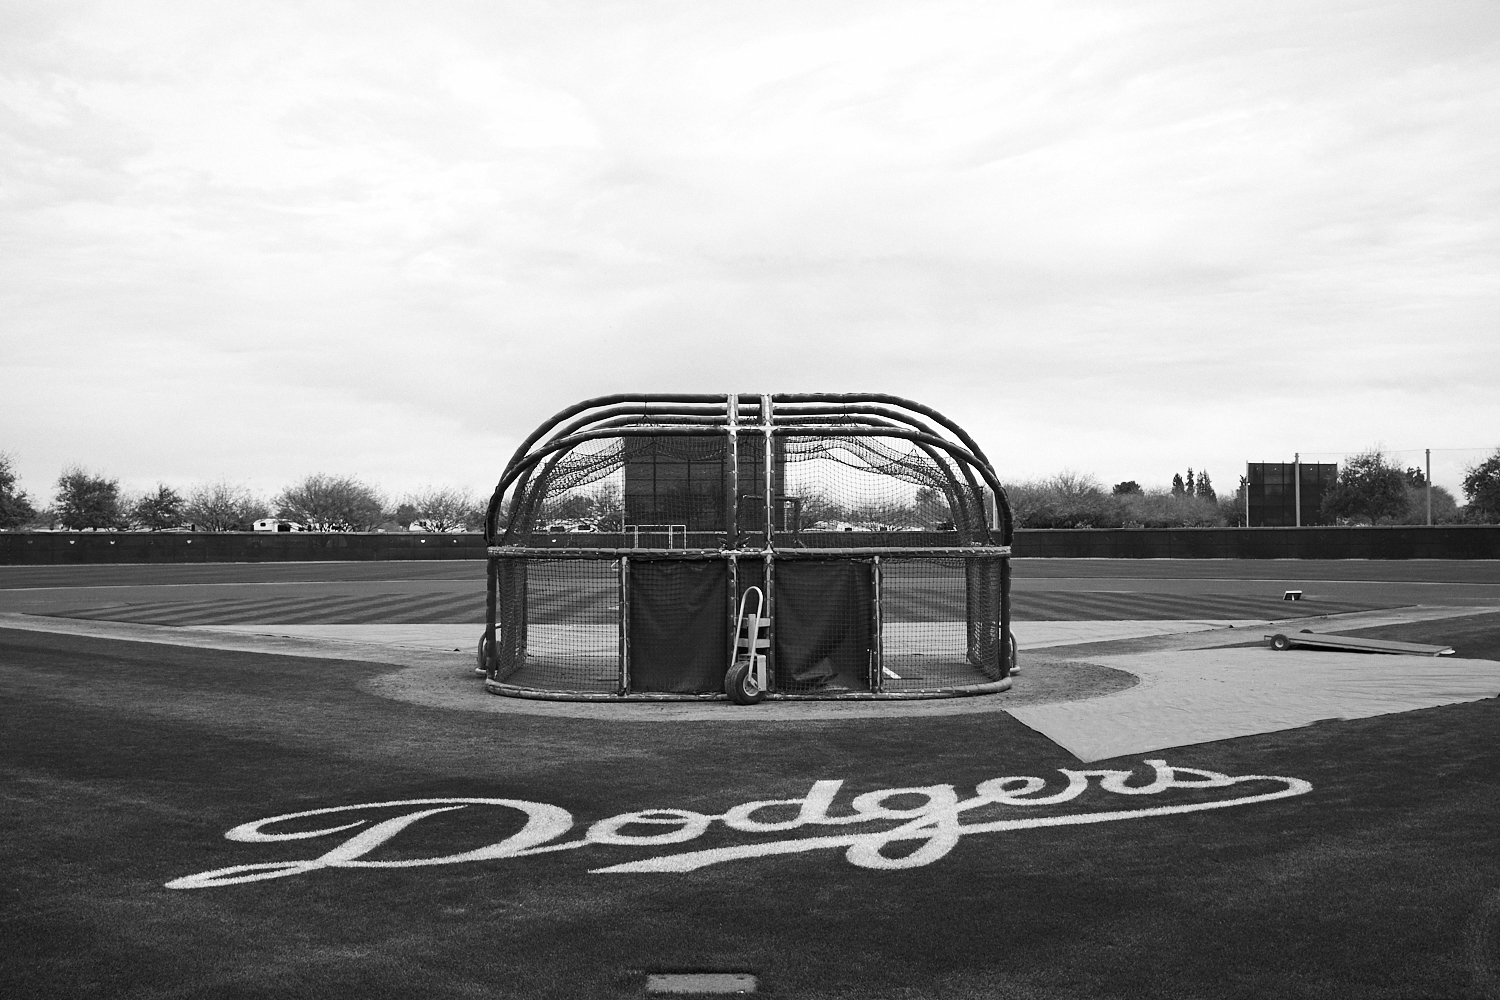 kyle_ellis_photography_dodgers_0138.jpg